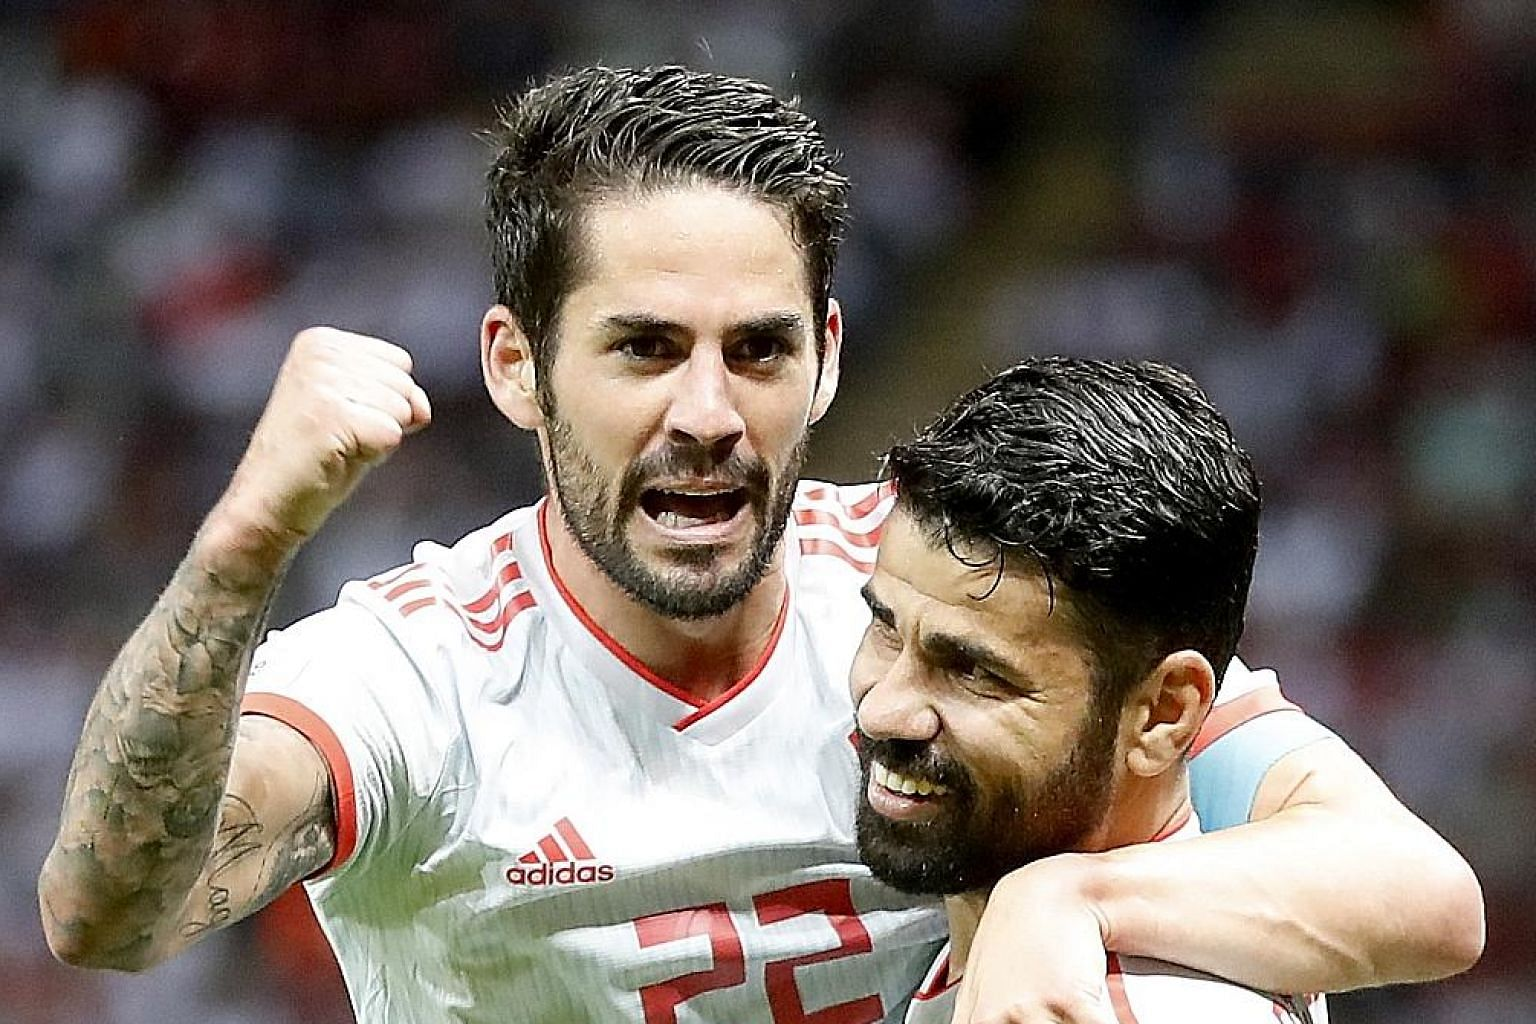 Diego Costa (right) celebrating with Spain team-mate Isco after scoring the only goal of the World Cup match against Iran on Wednesday.